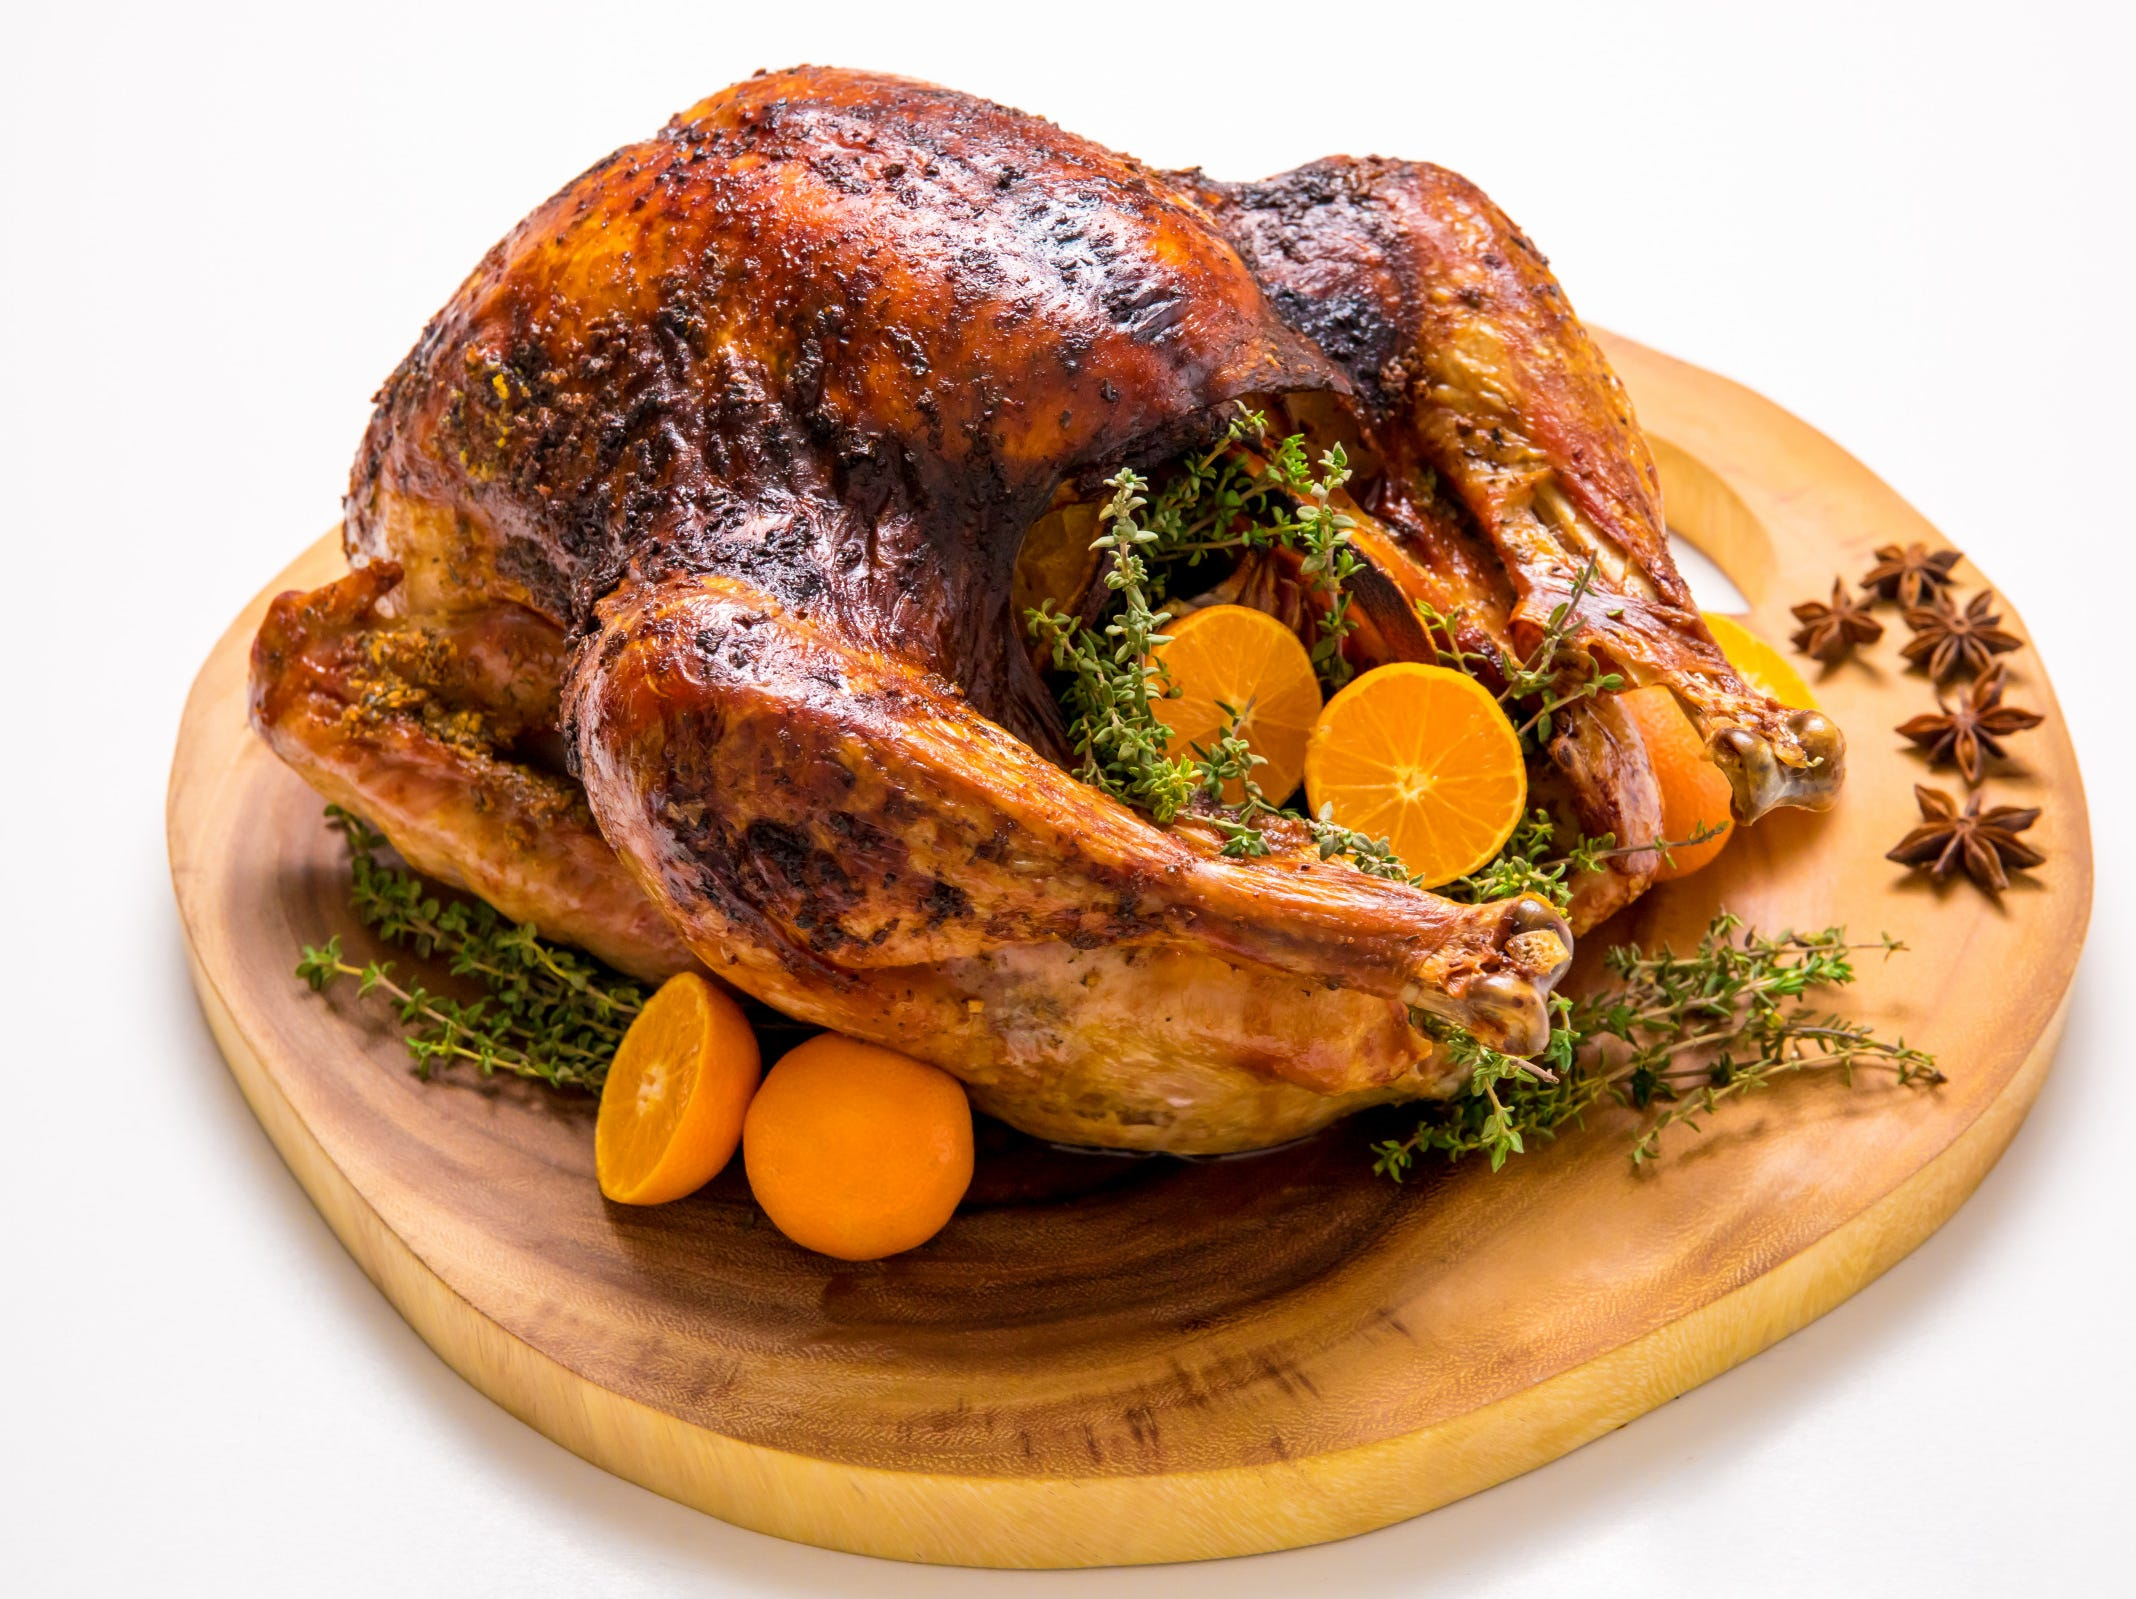 This orange, anise and thyme roasted turkey, inspired by Savory Experiments, boasts big citrus flavor and the complementary meat-loving tastes offered by star anise, fresh thyme, and garlic.